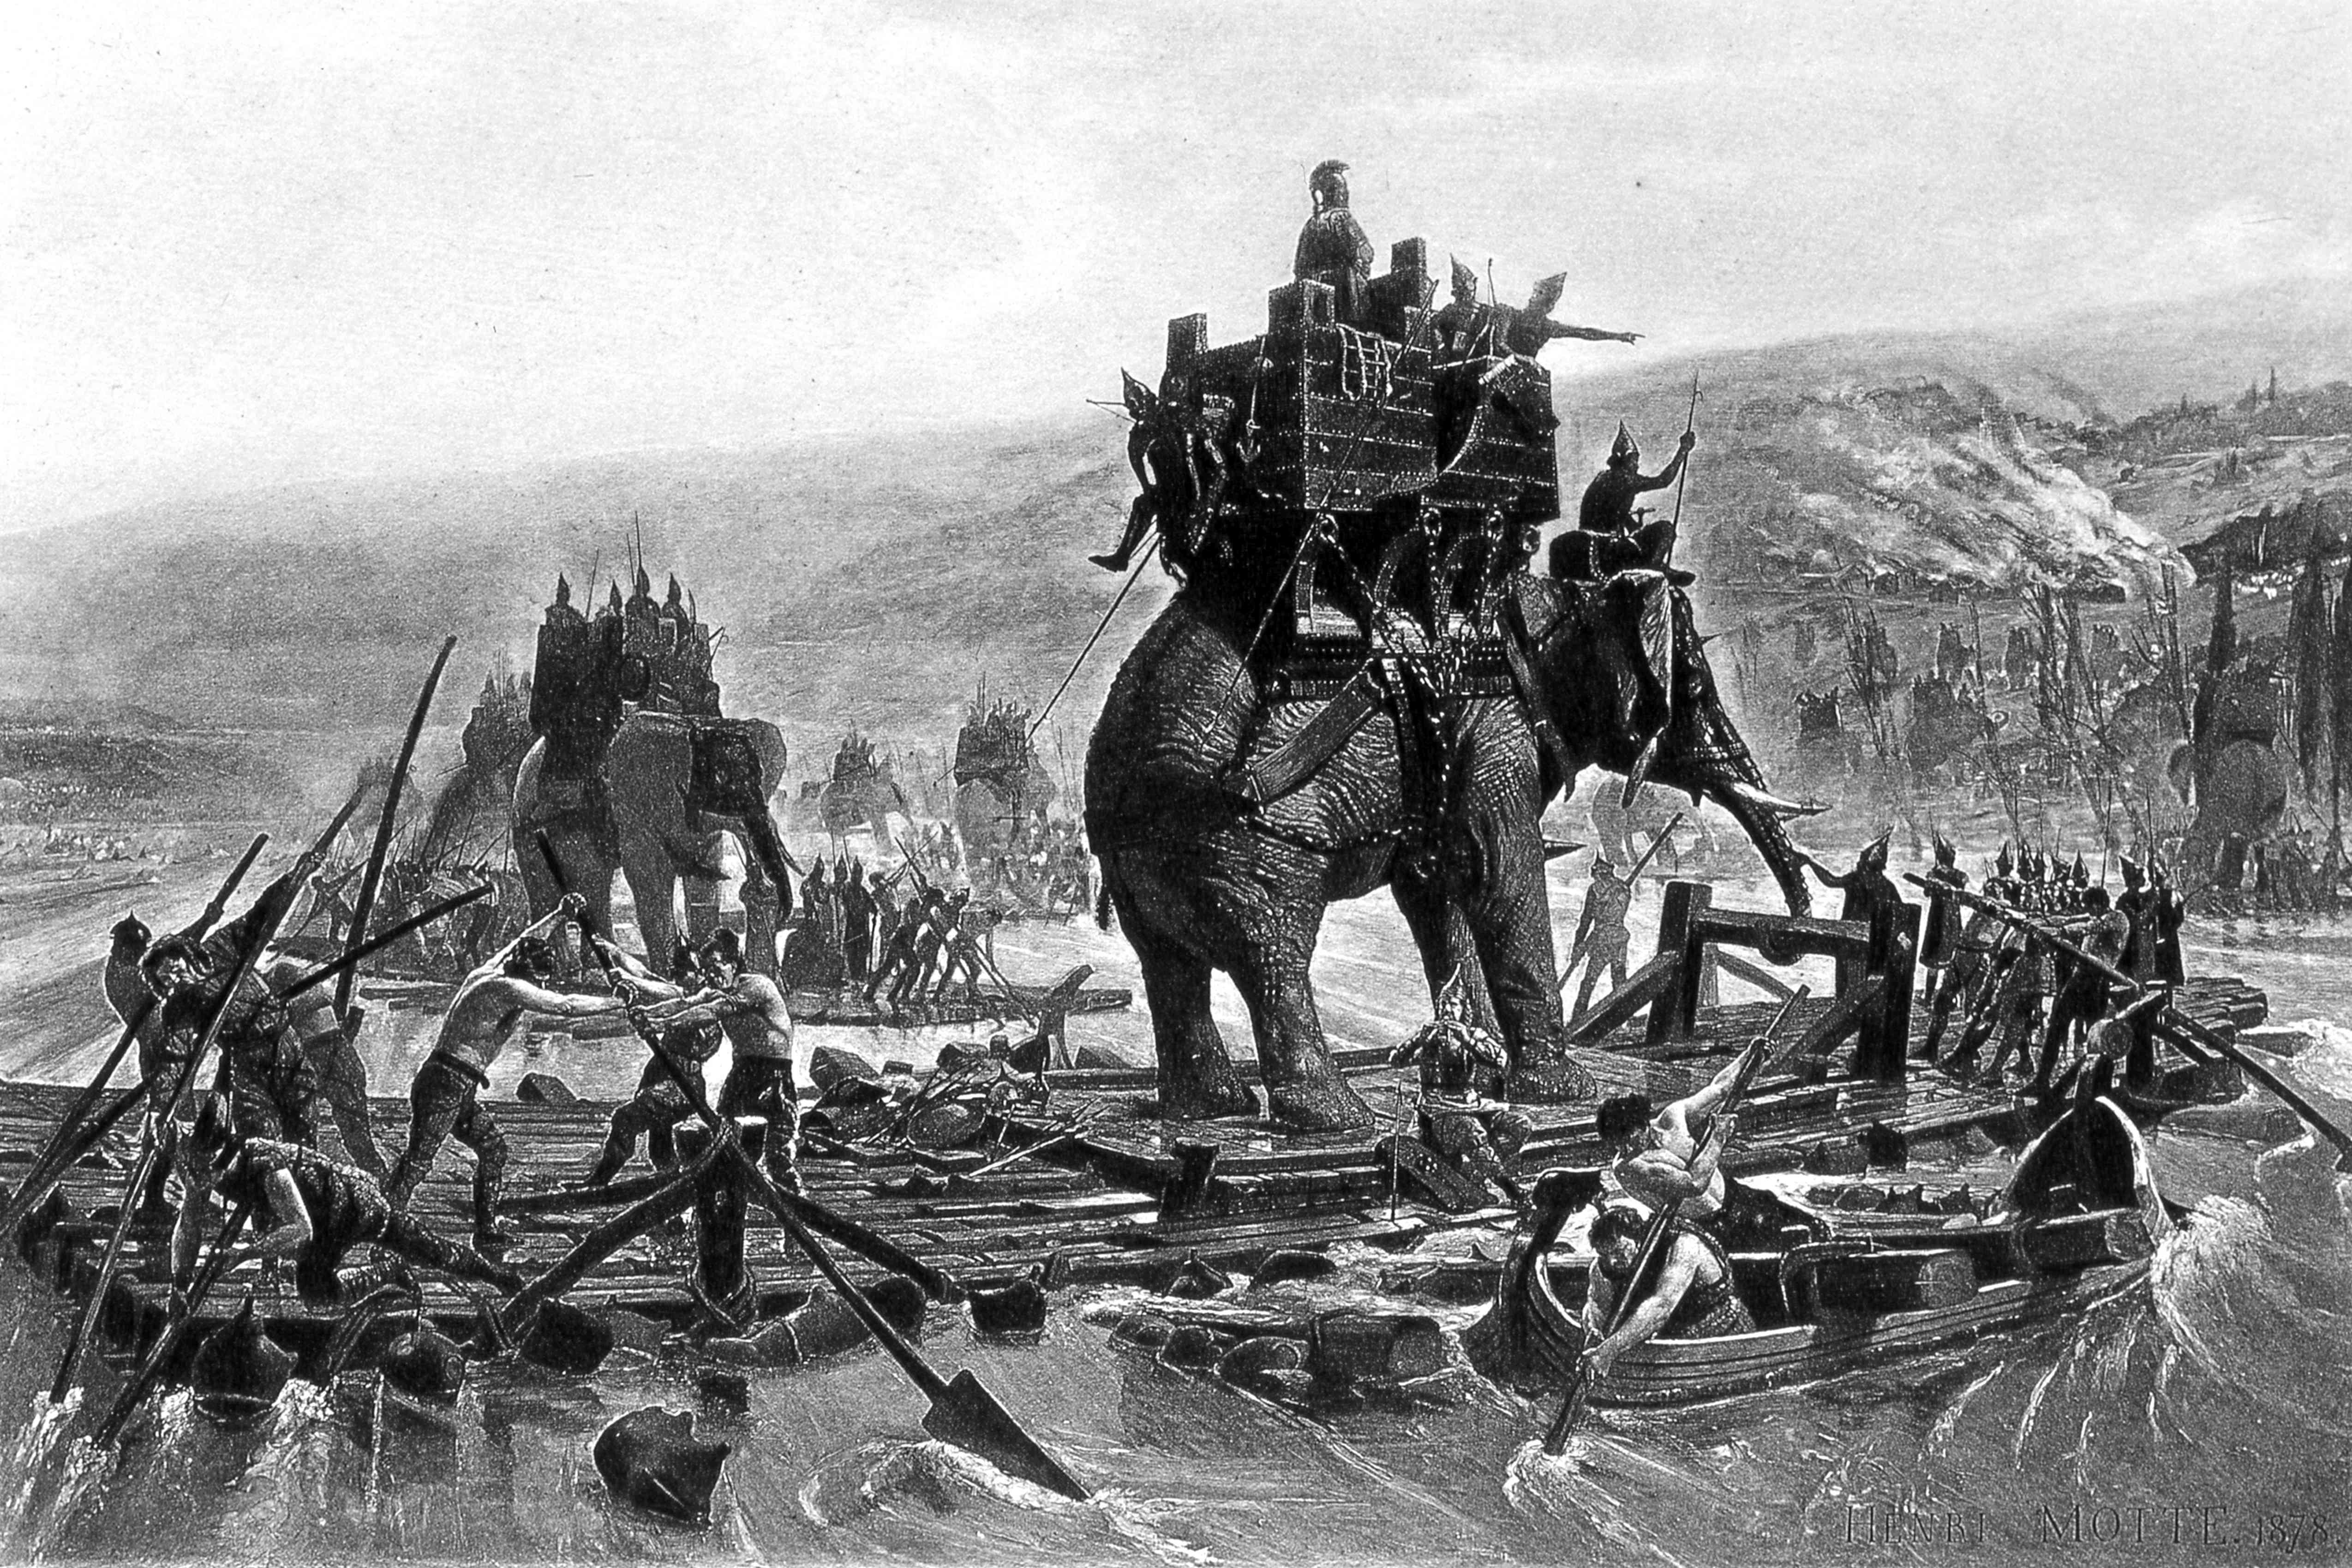 Hannibal crossing the Rhone River on an elephant